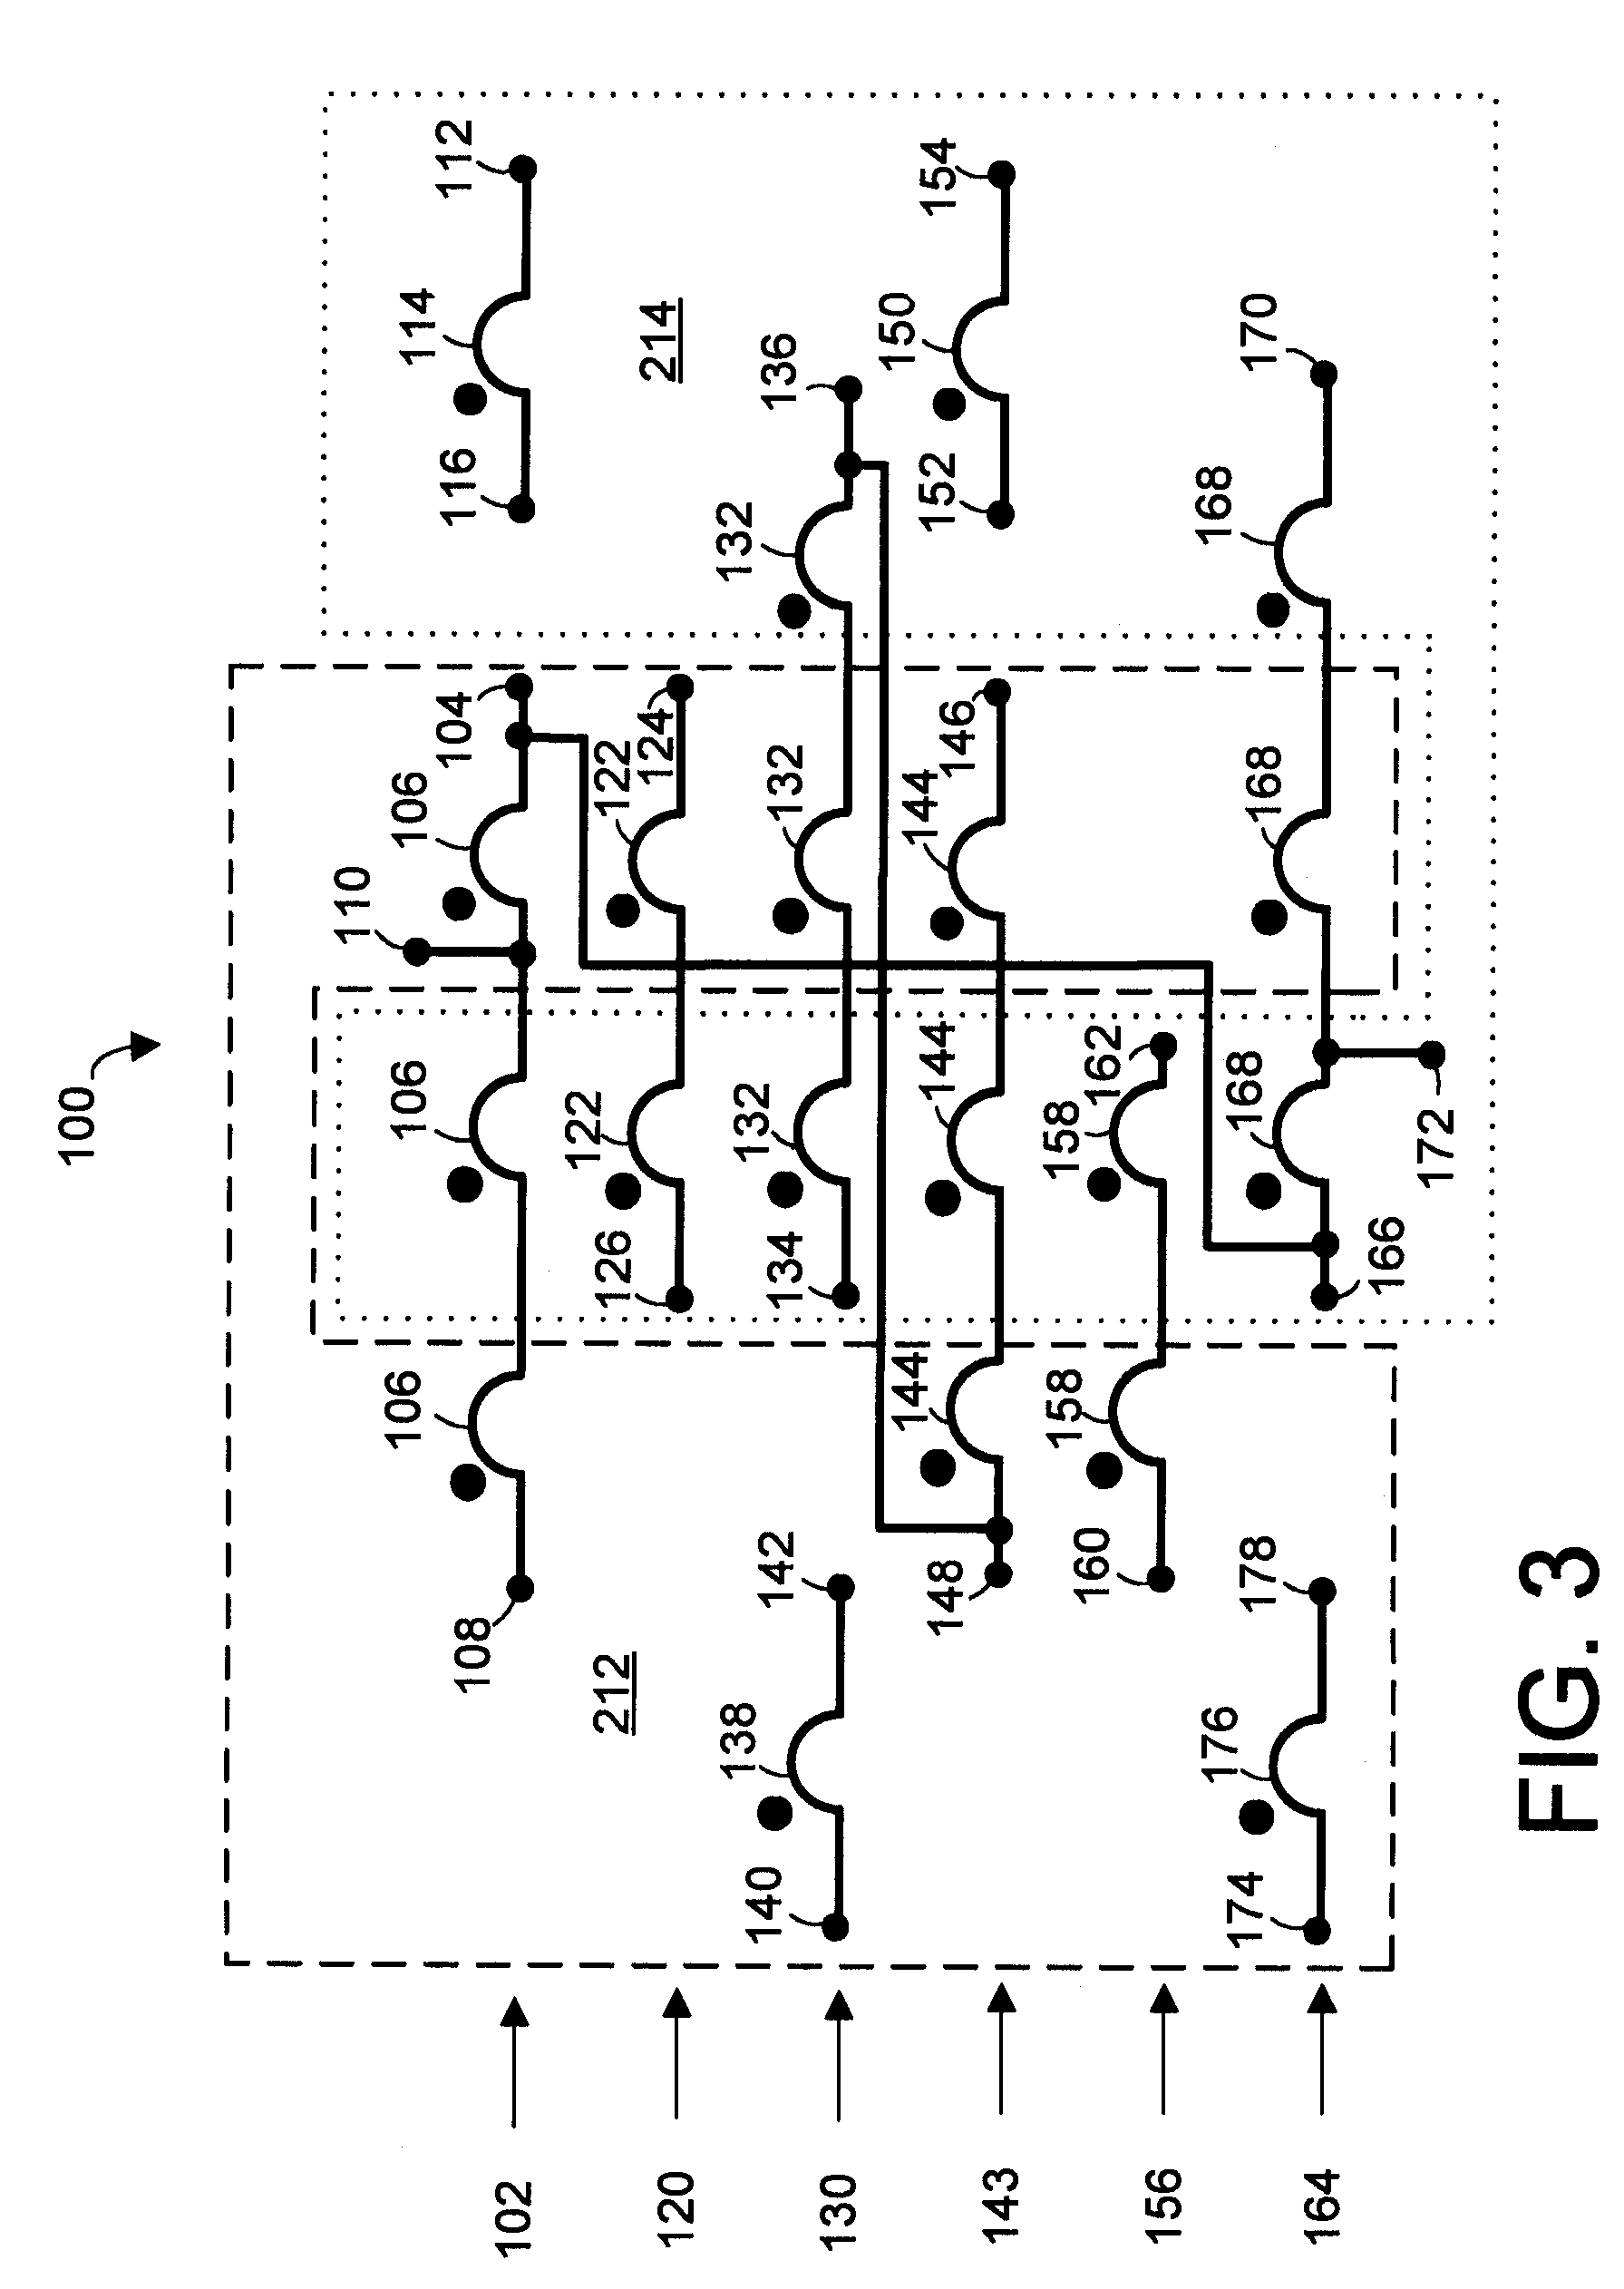 and b continuous flow production of a printed circuit board 6